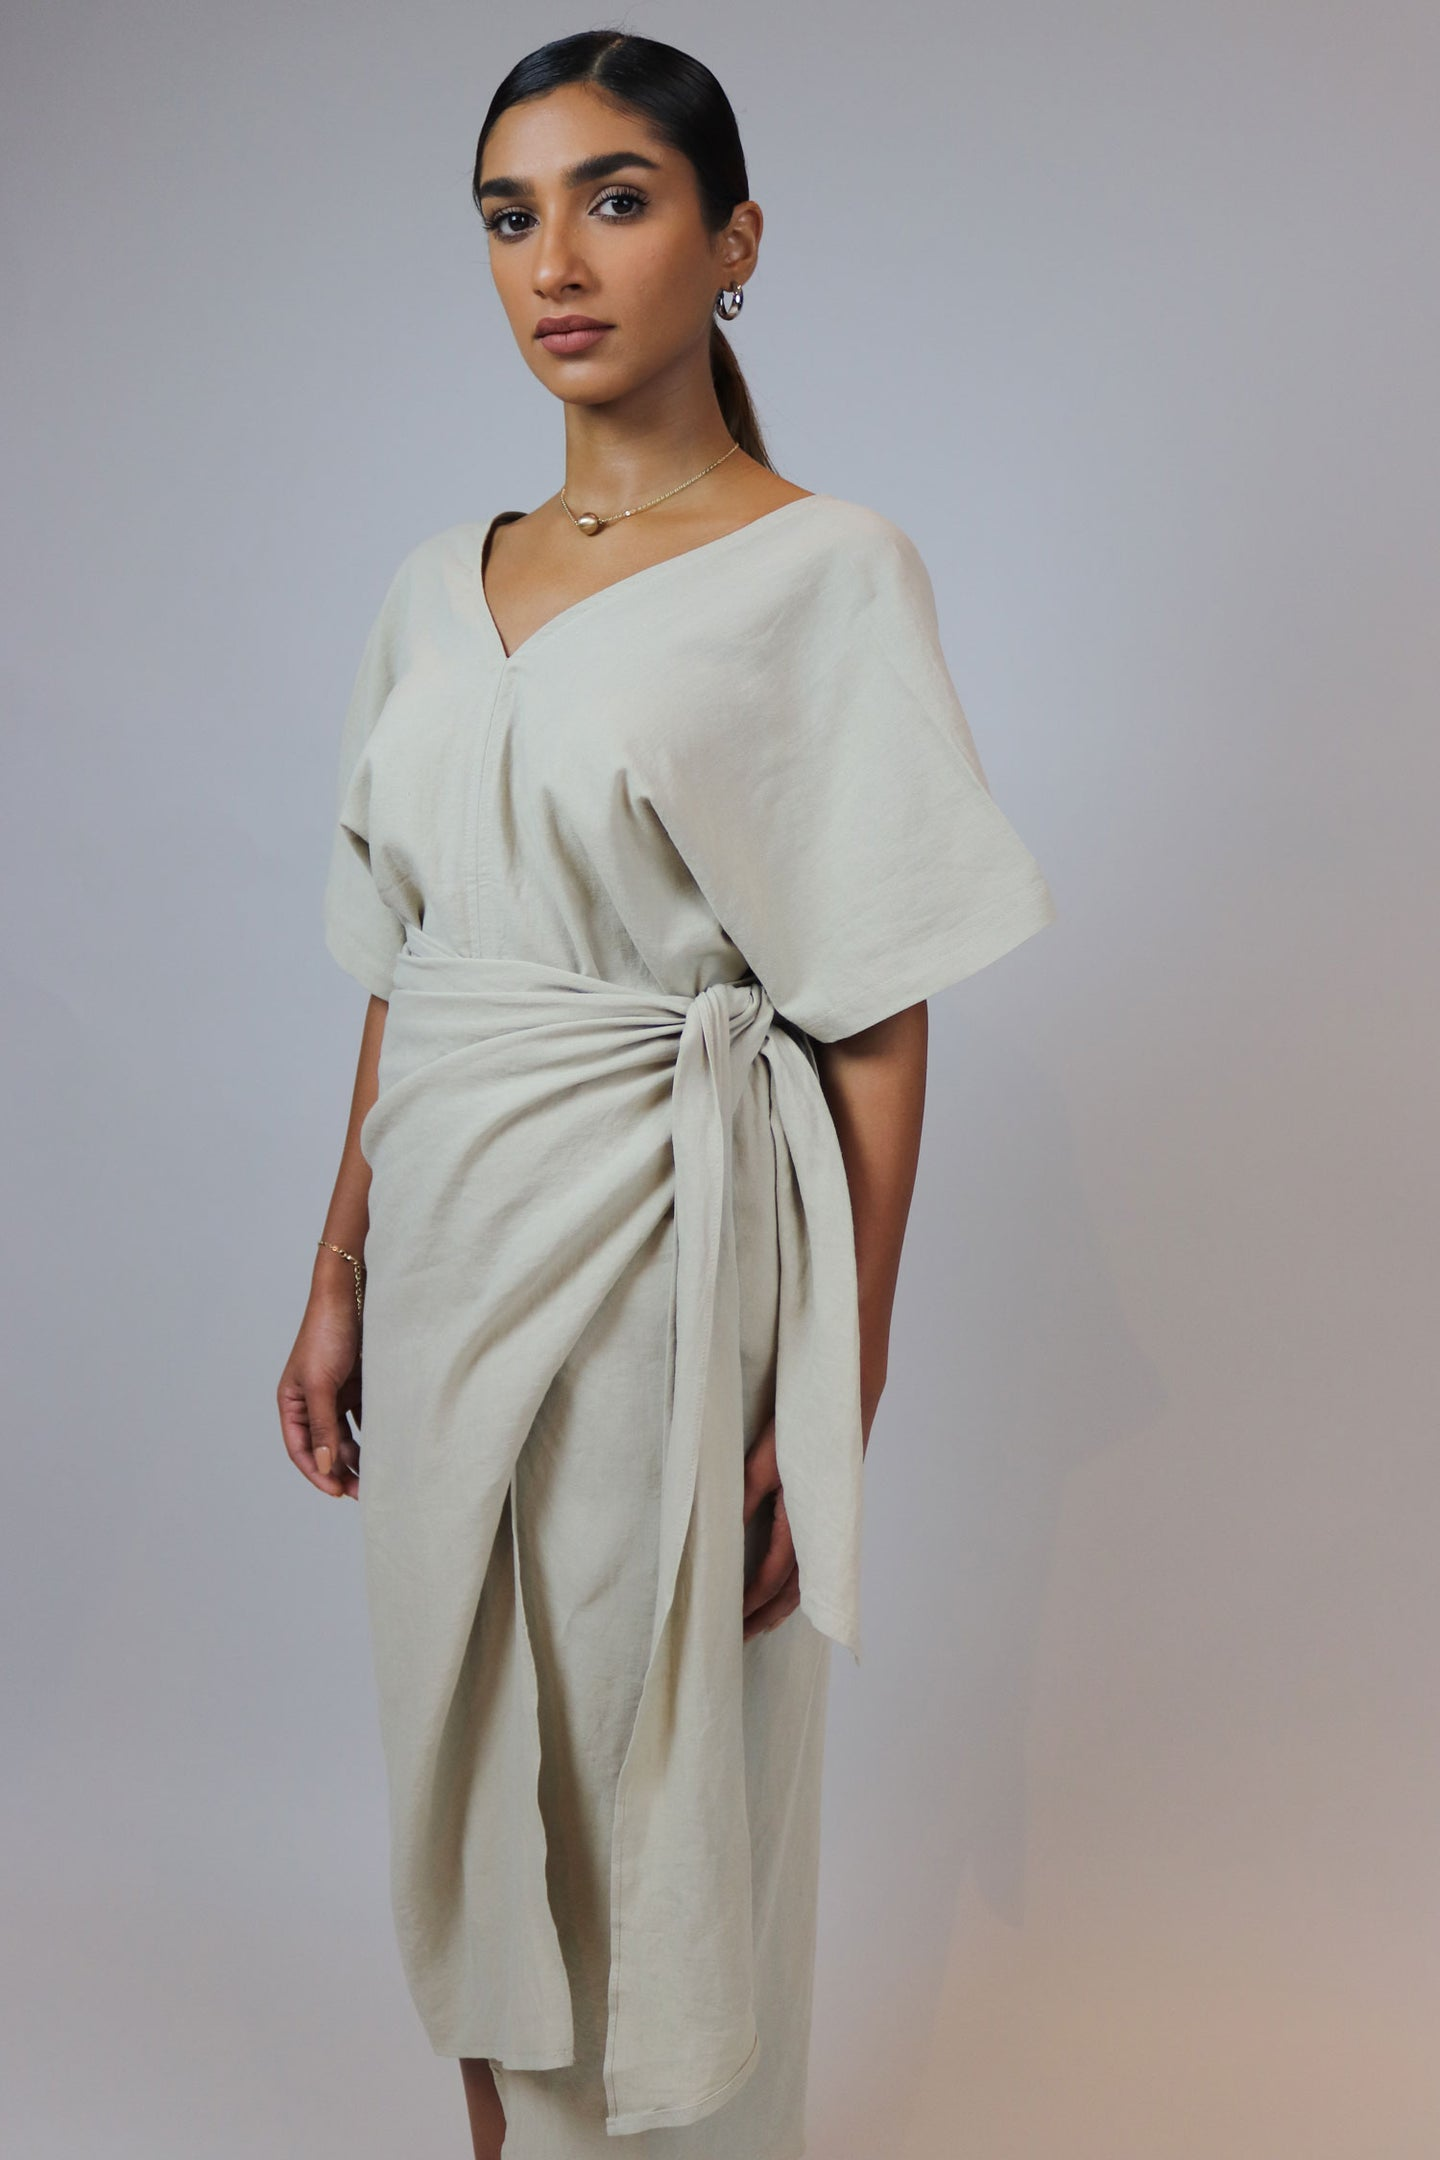 Linen Wrapped Beige Top and Skirt Set